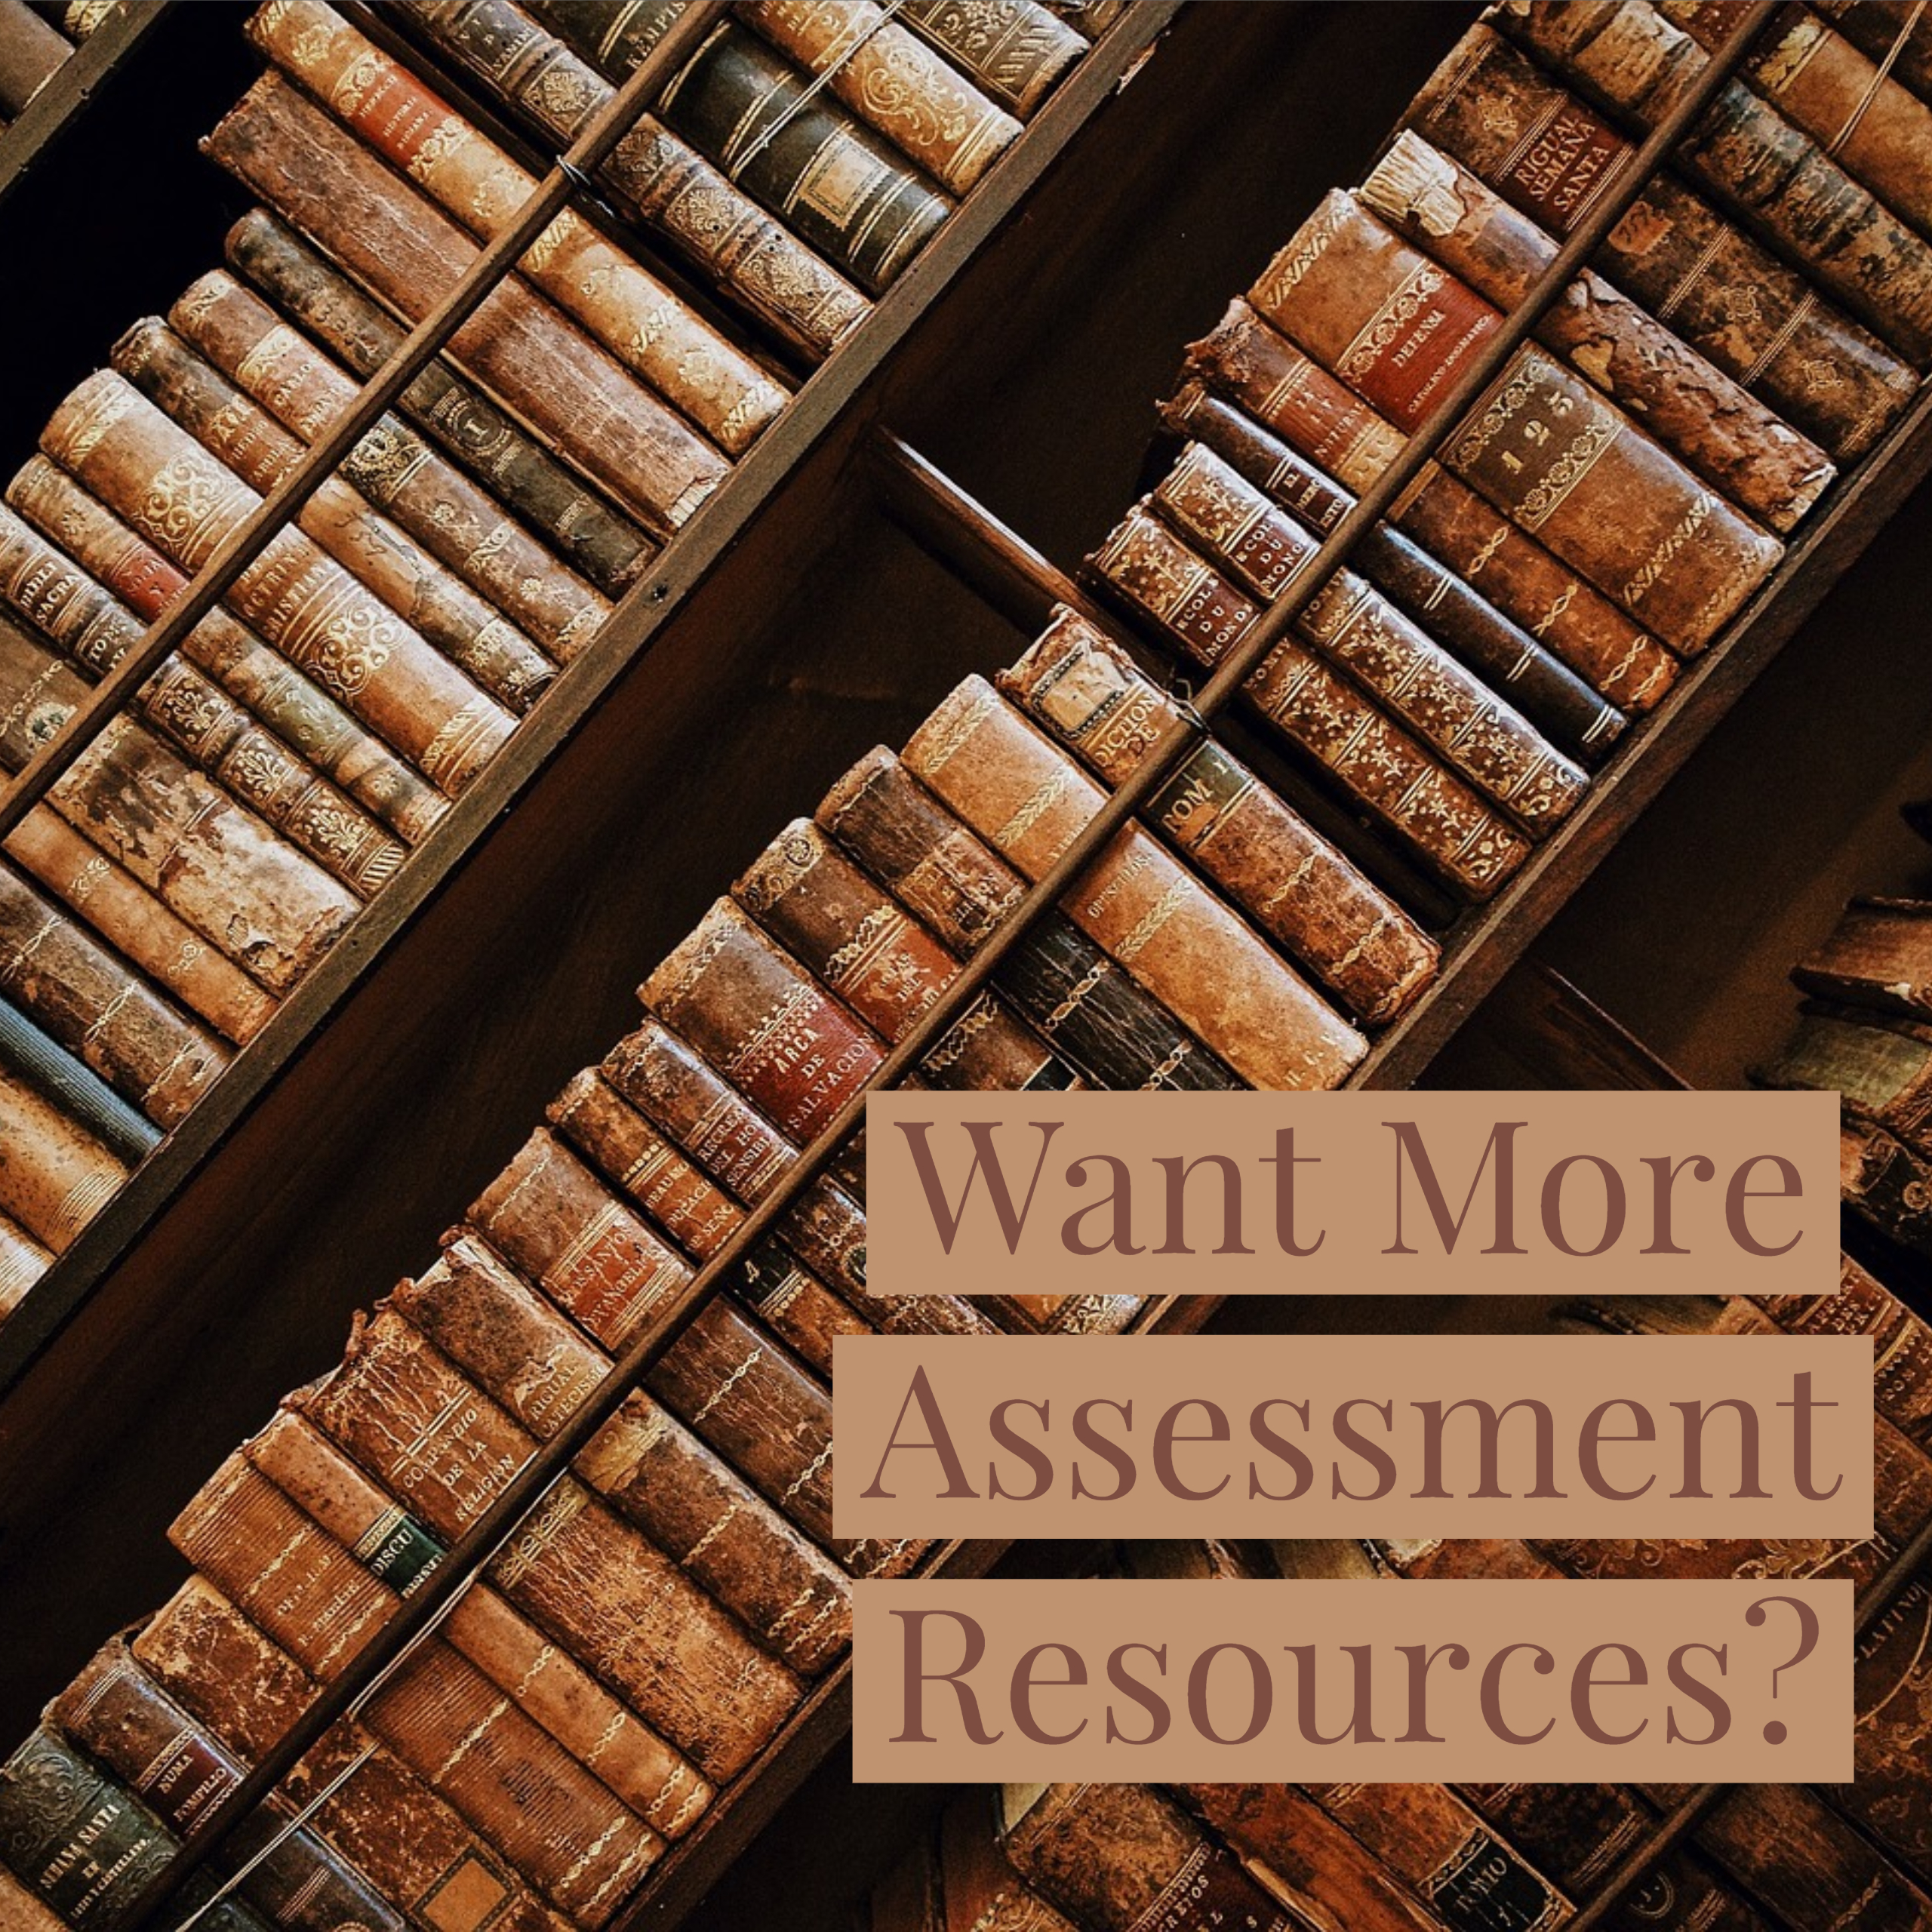 More Assessment Resources